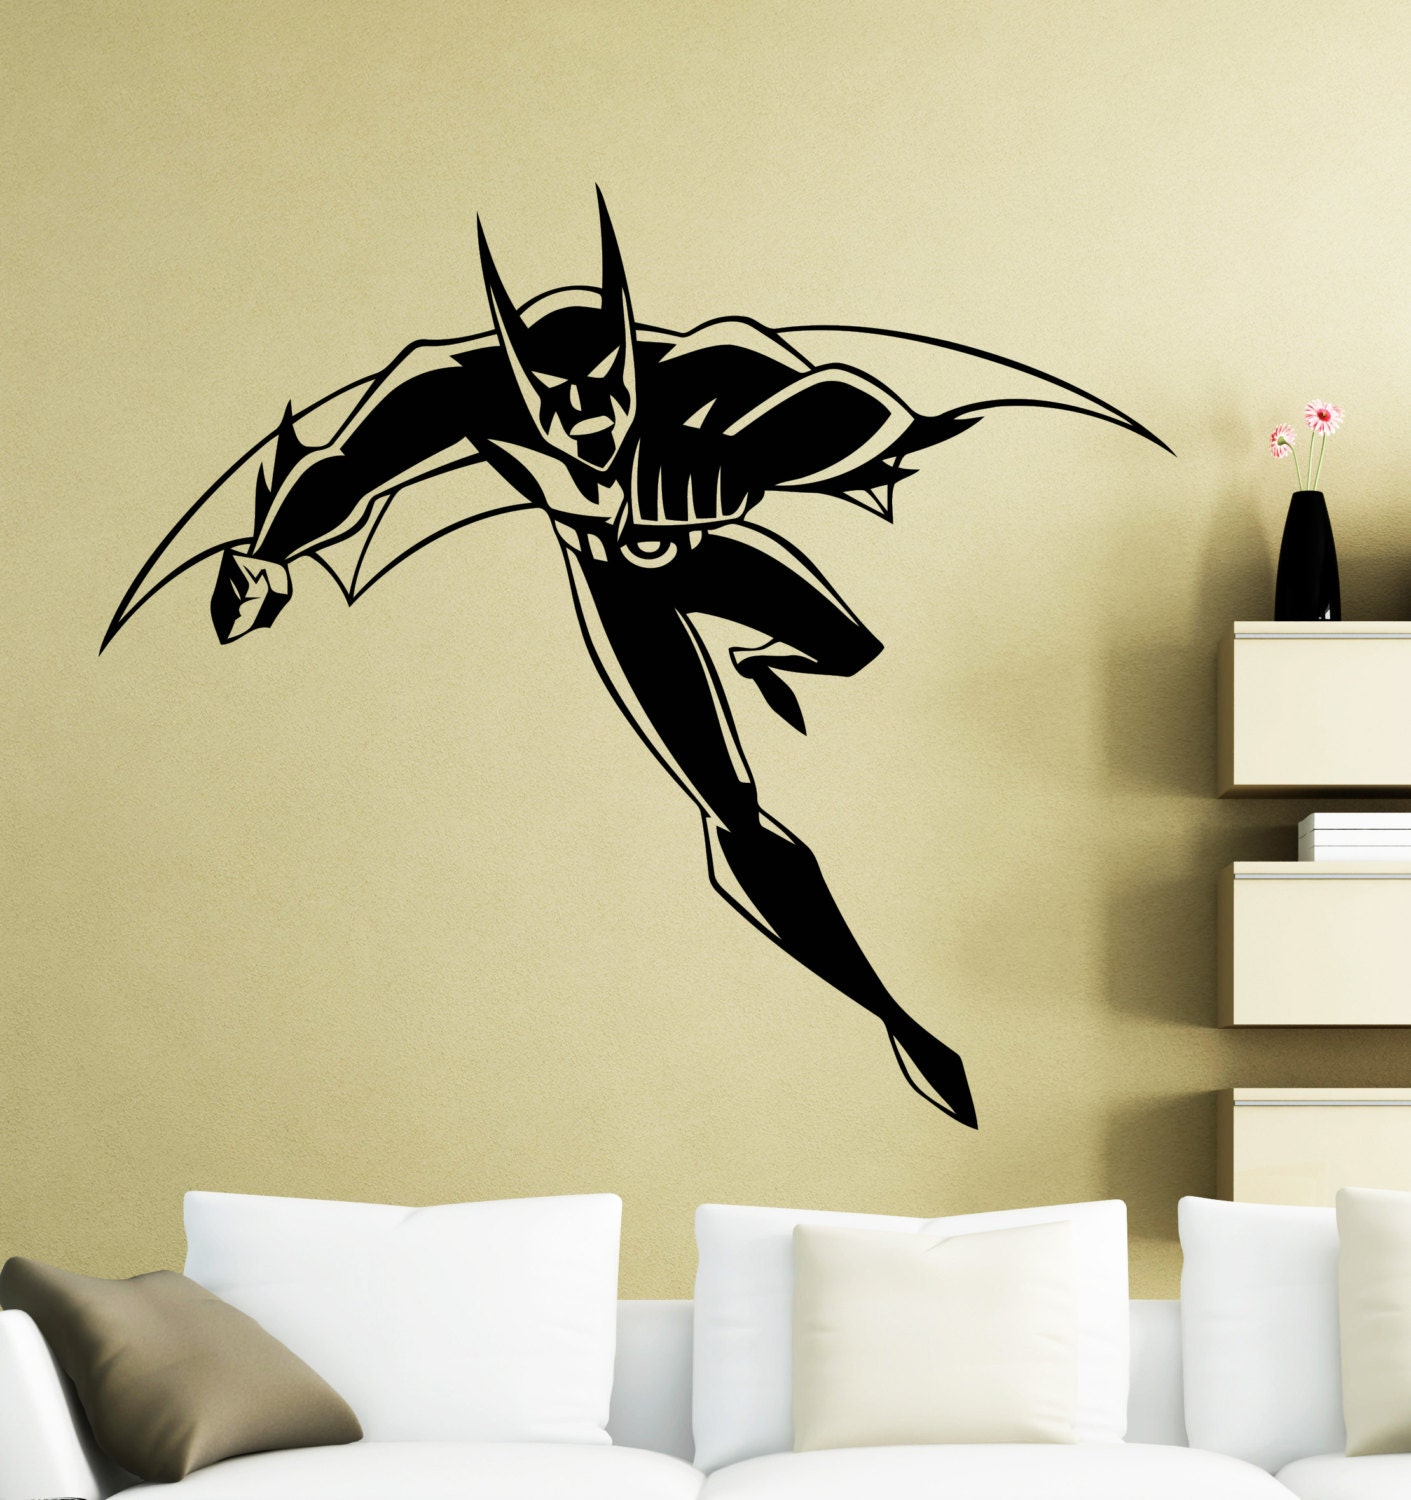 Batman beyond wall sticker superhero dc marvel comics vinyl decal home interior decoration waterproof high quality mural 29su